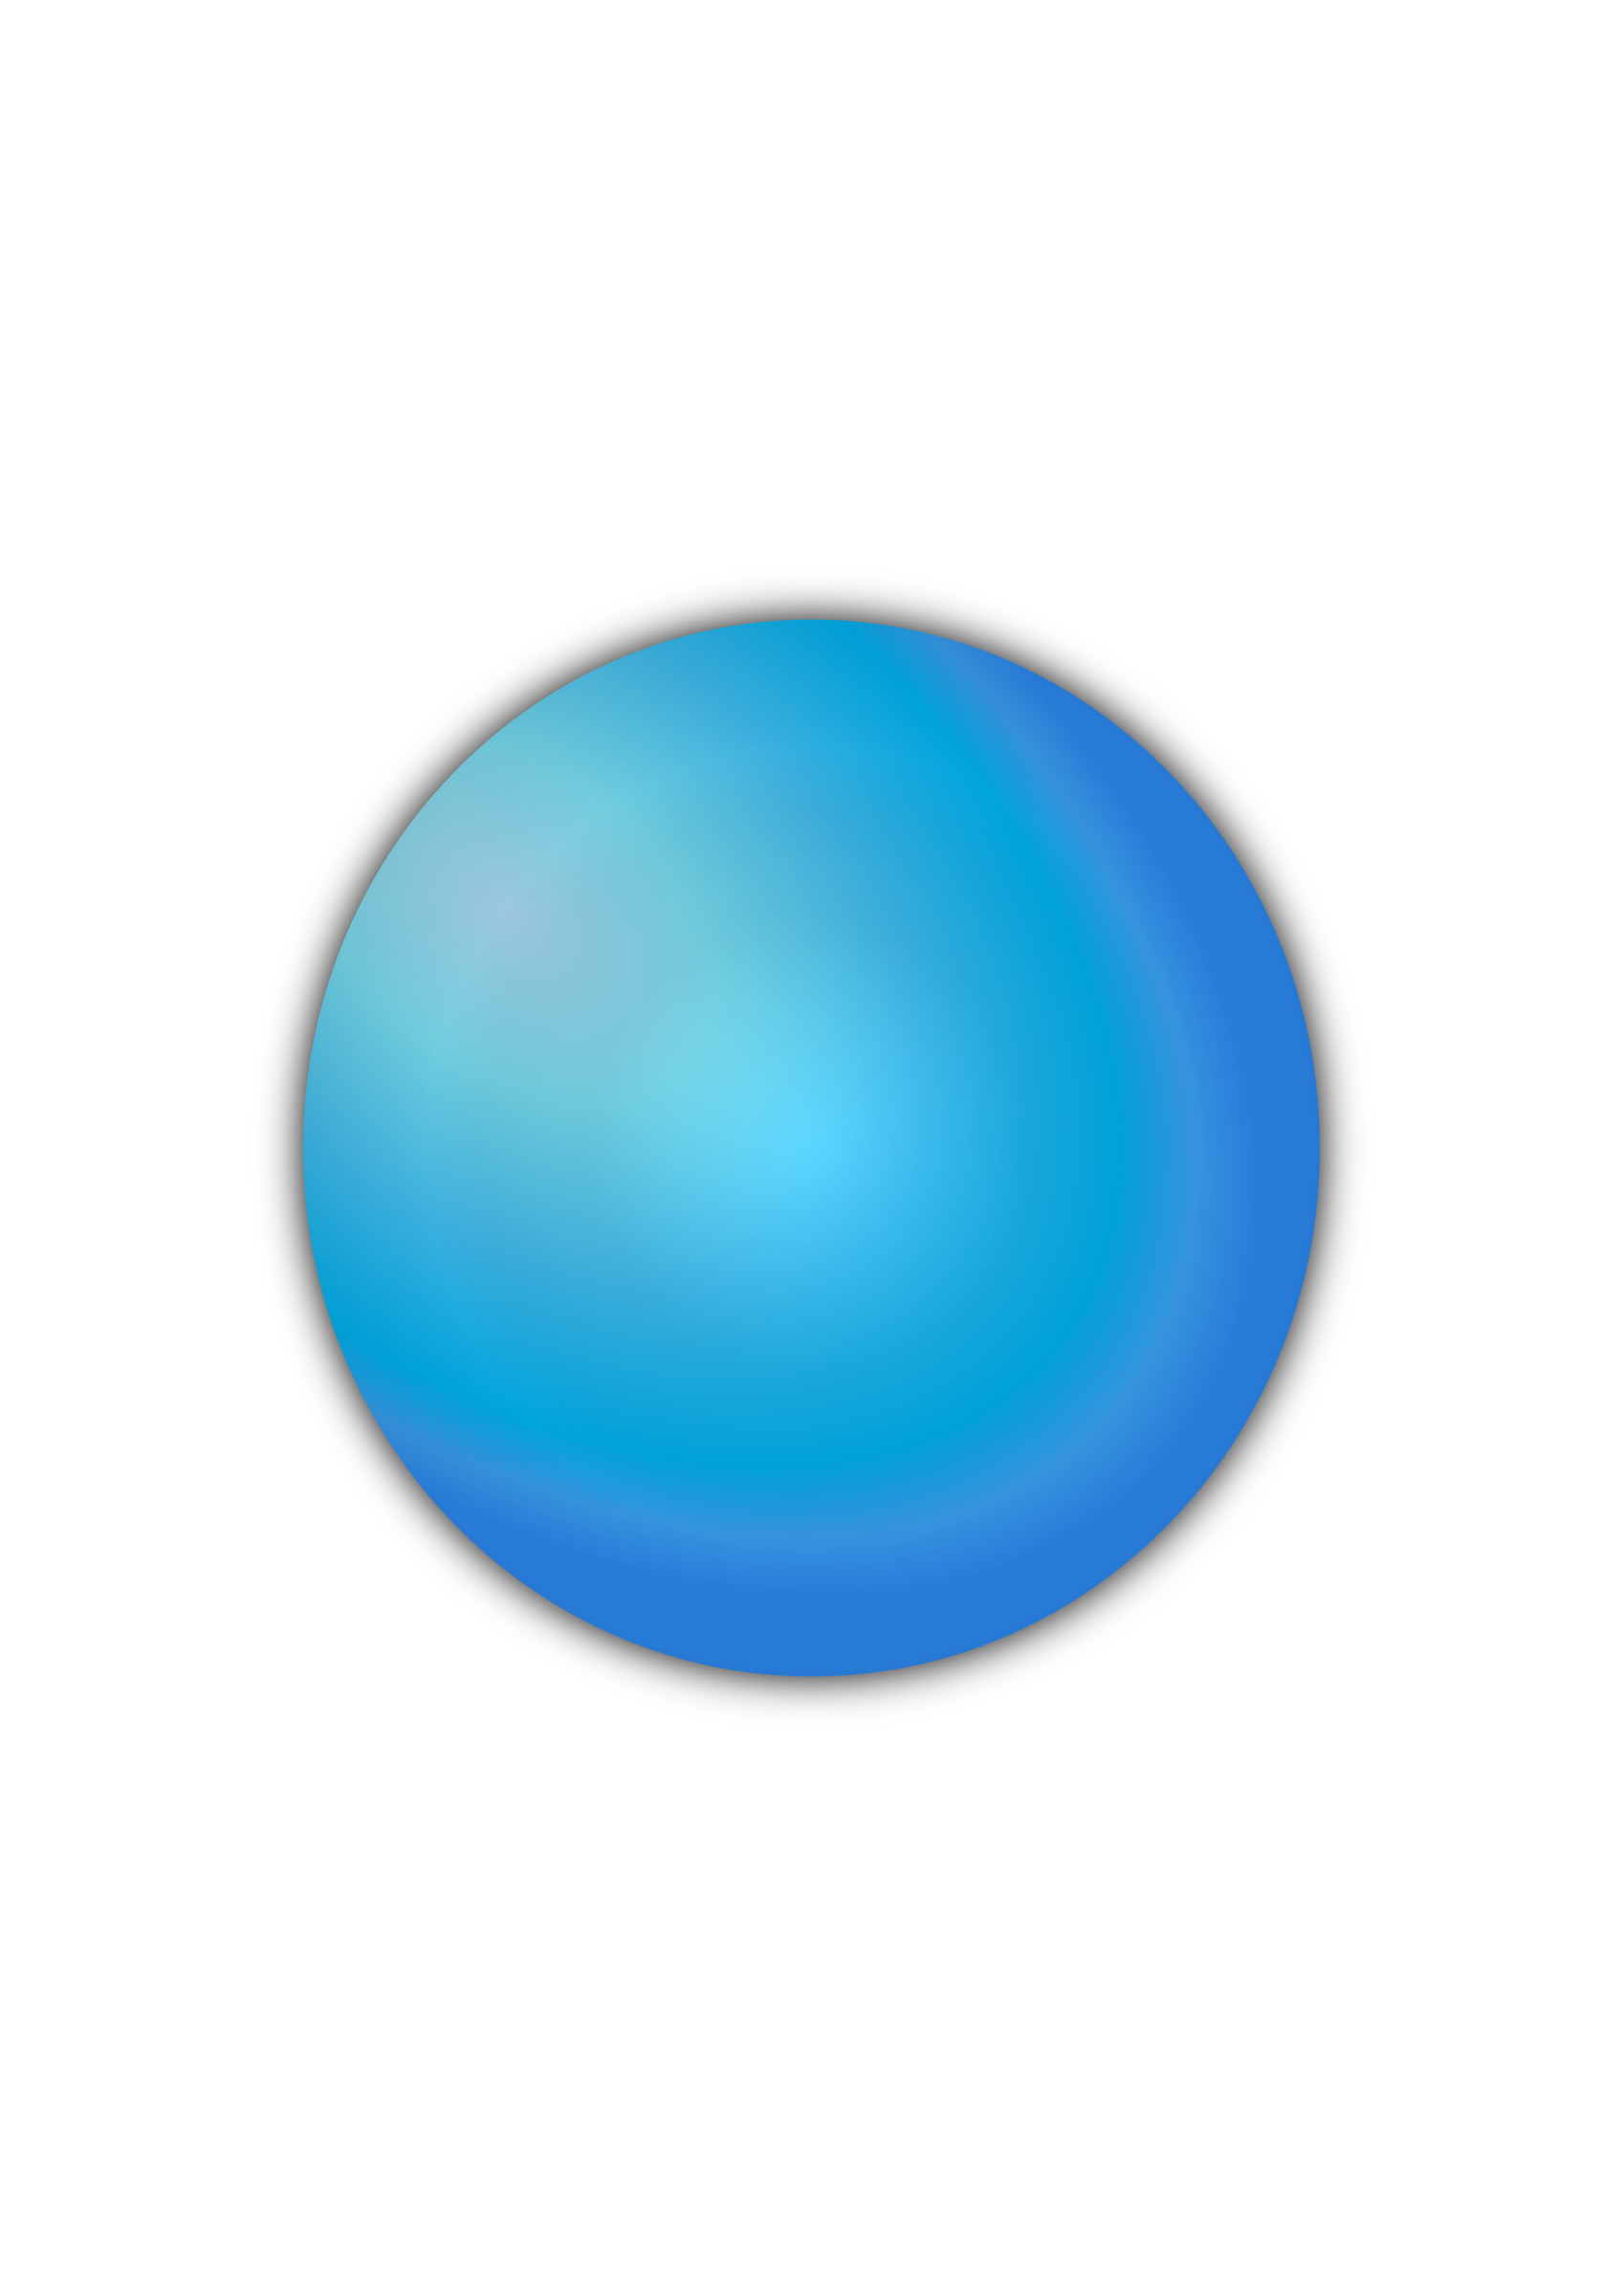 my planet Uranus by juan camilo